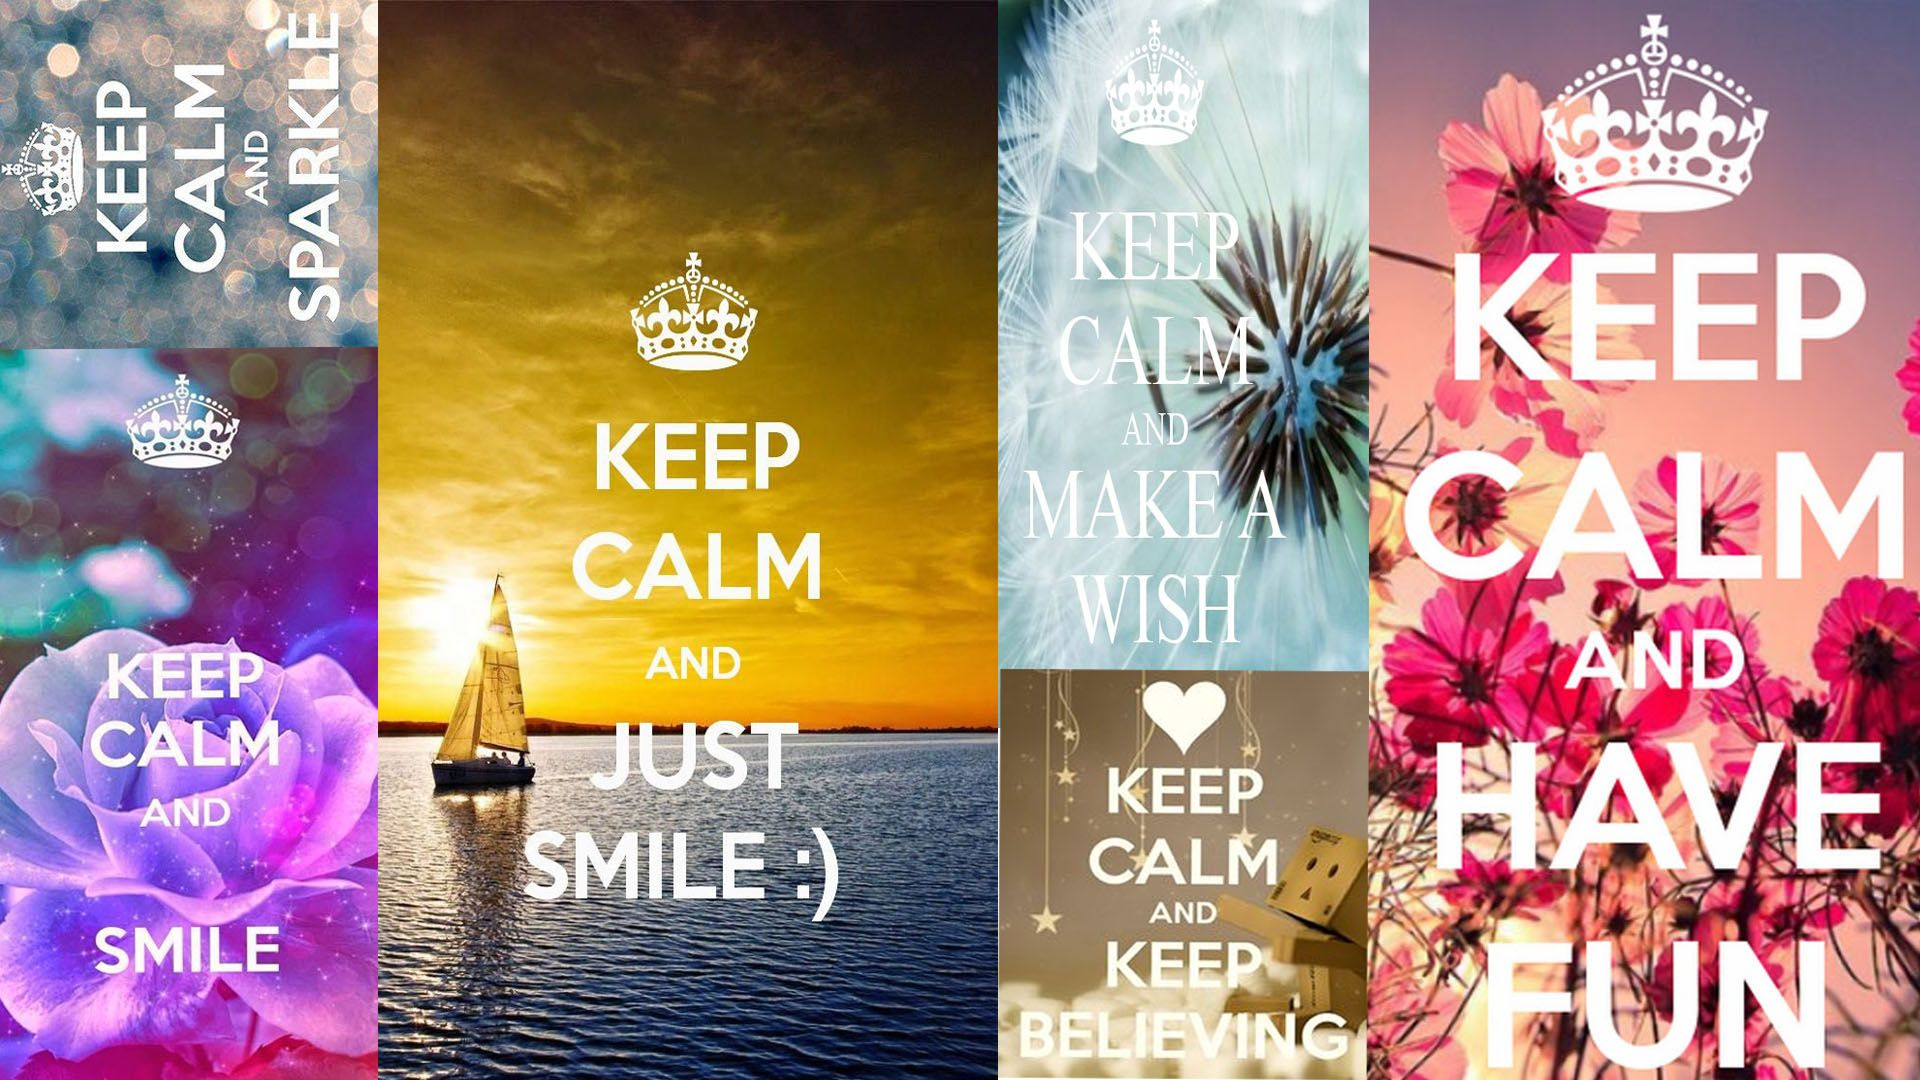 Free Download This Amazing Keep Calm HD Wallpaper 1920x1080 For Your Computer